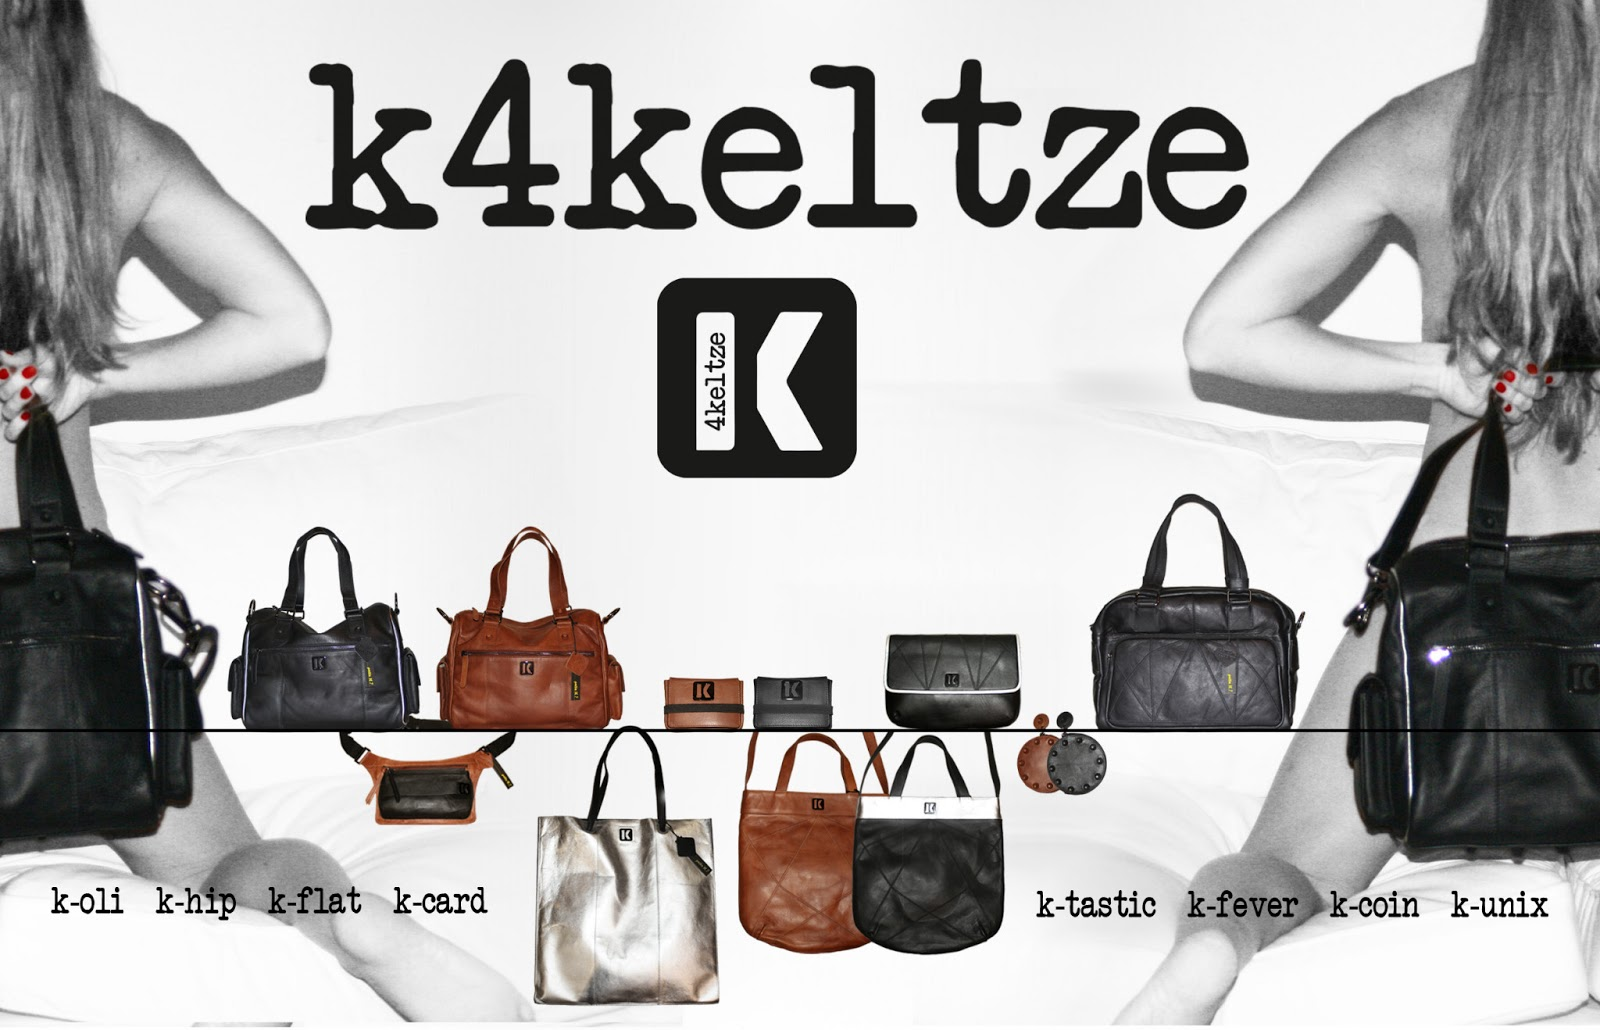 k4keltze collection